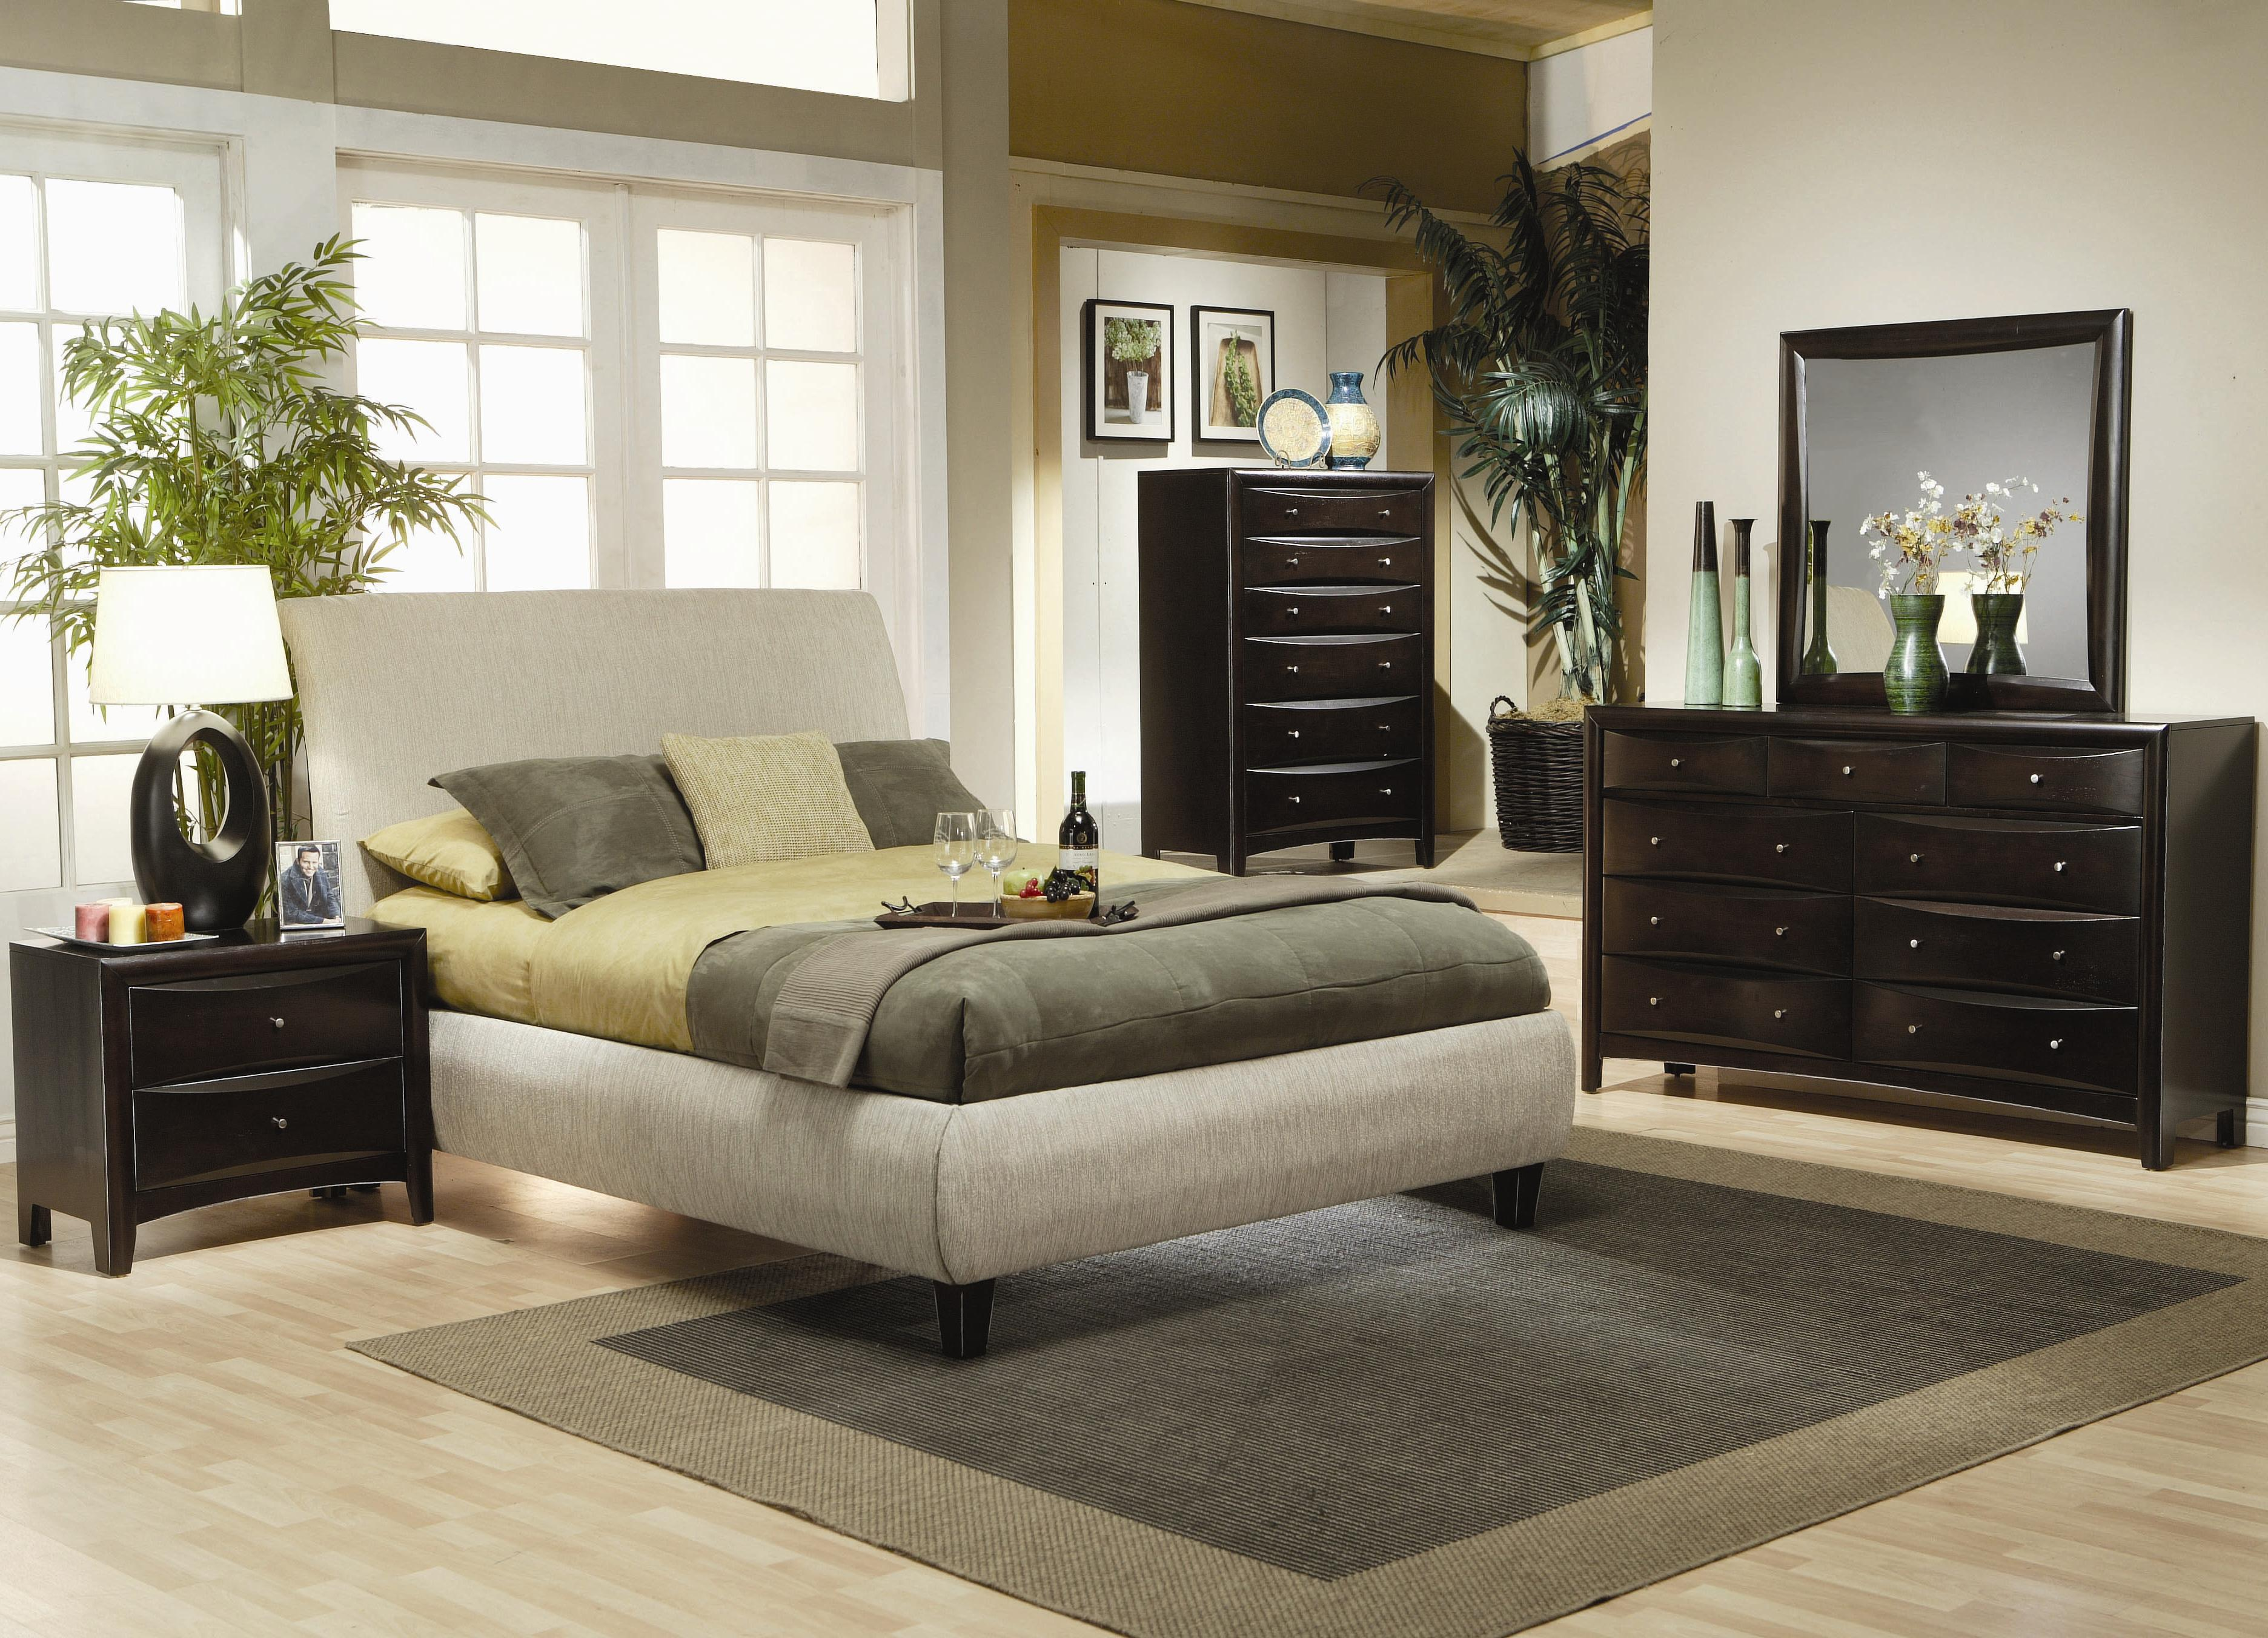 Phoenix 4pc Bedroom Set  Furniture Mattress Los Angeles